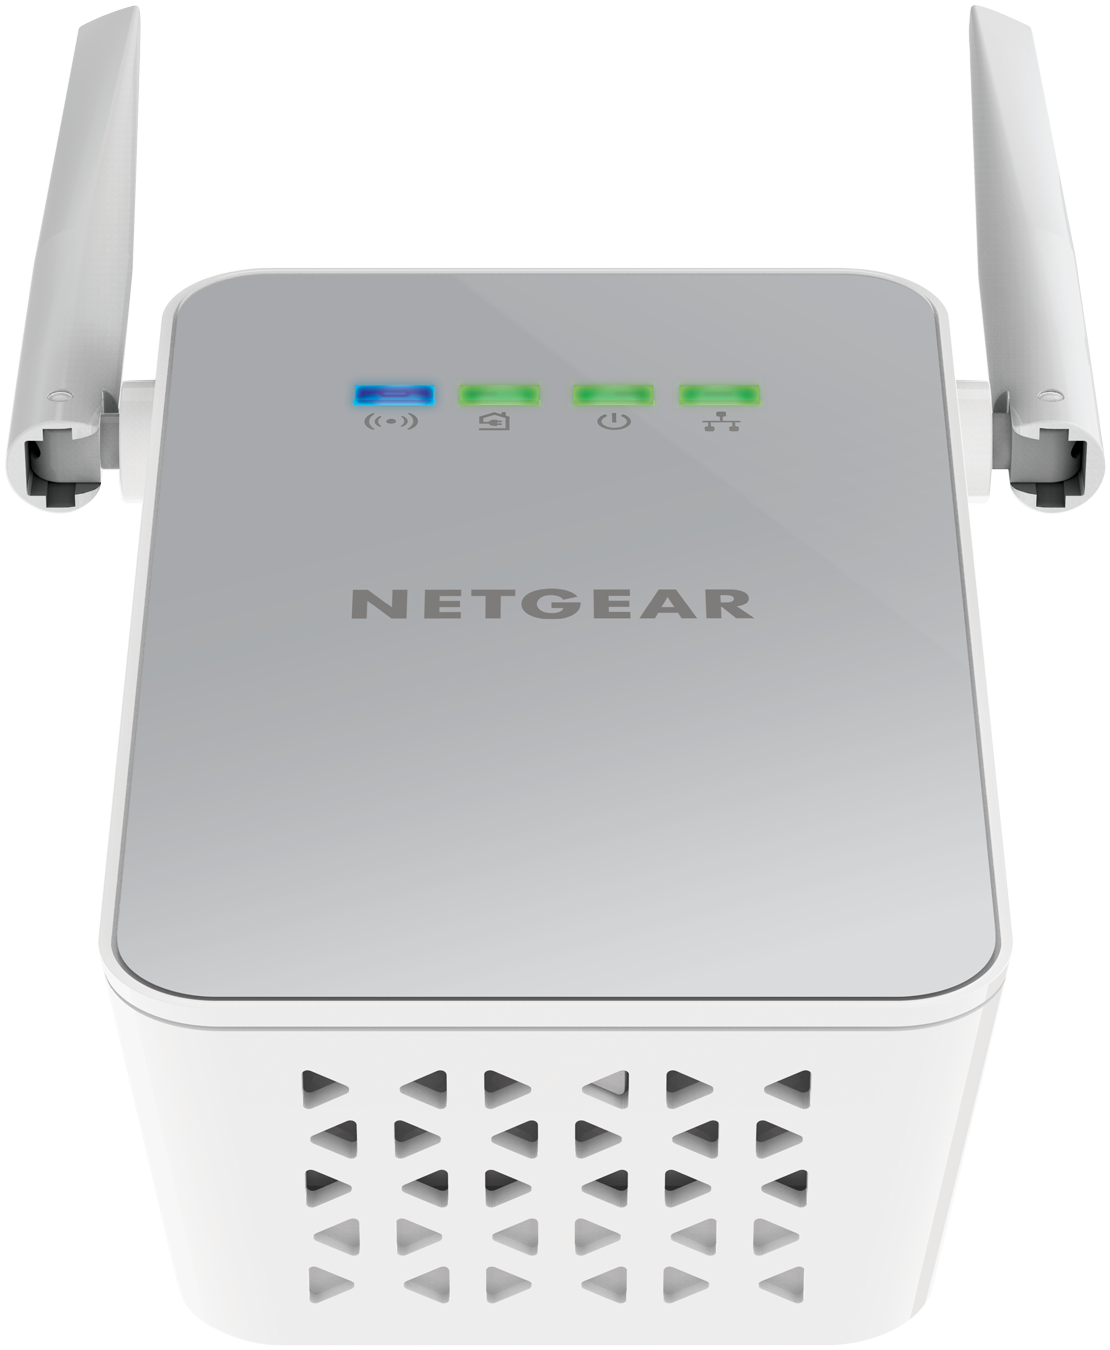 Plw1000 Powerline Networking Home Netgear